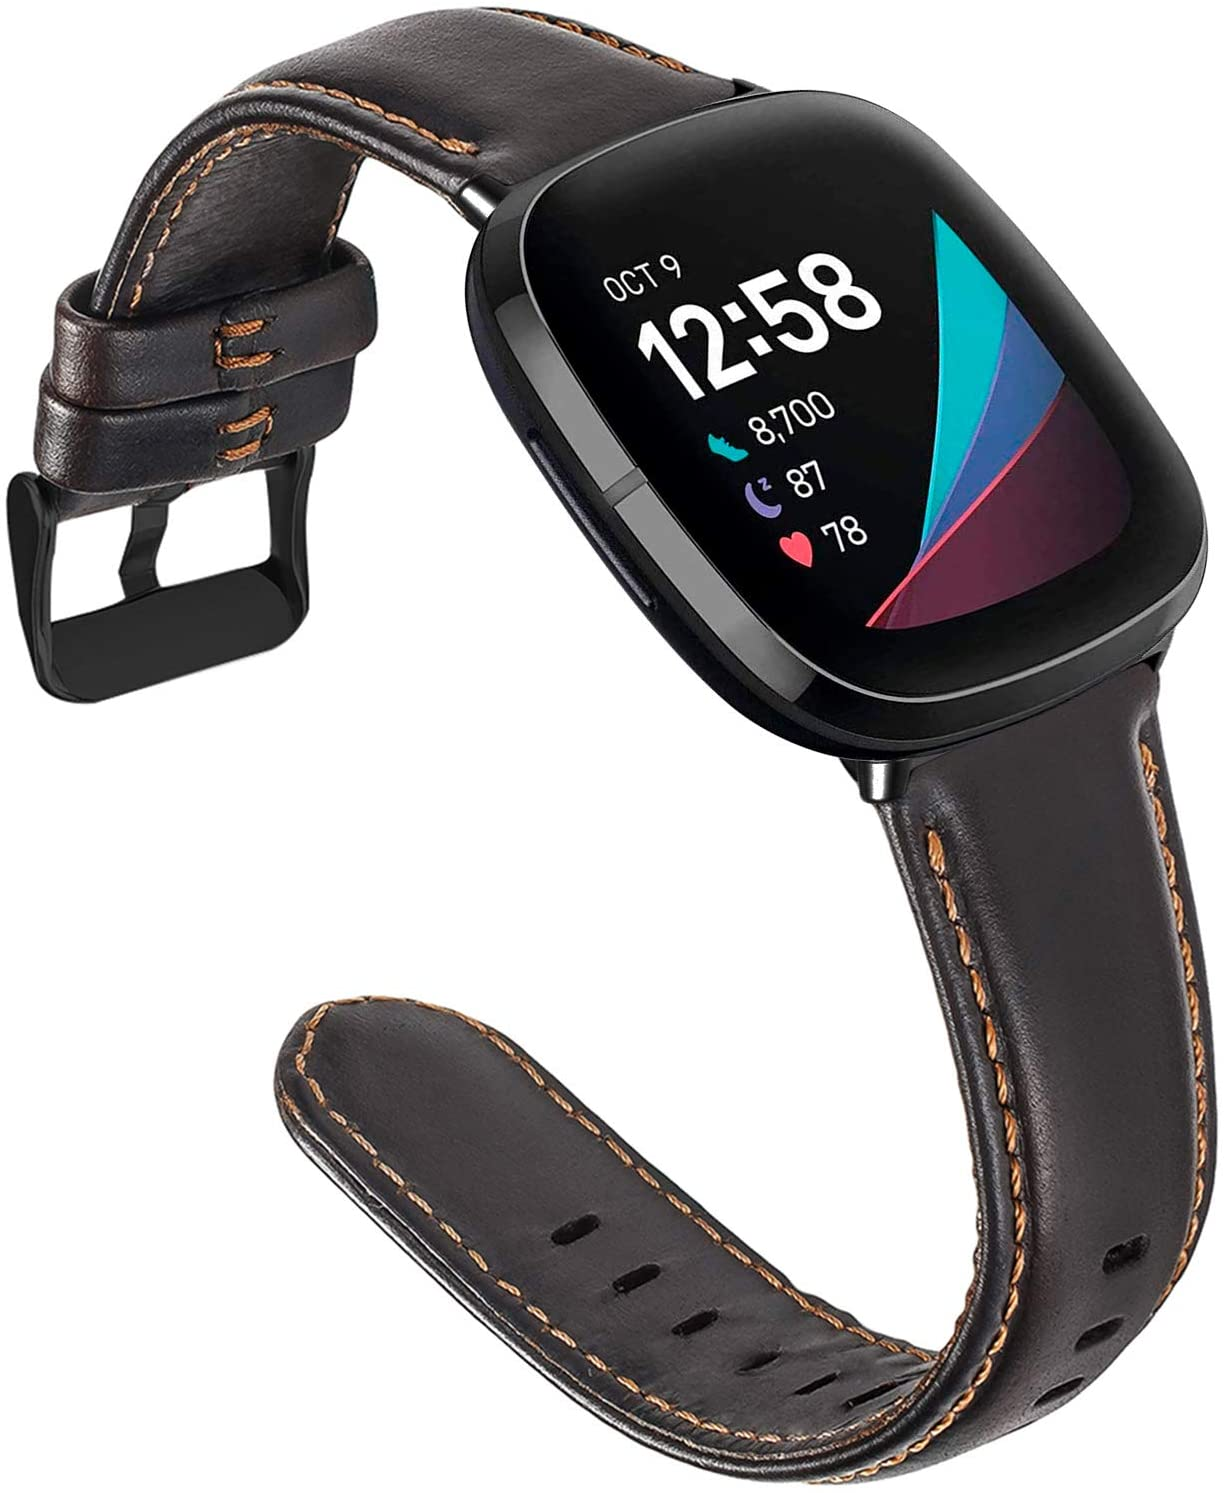 ALADRS Leather Watch Straps Compatible for Fitbit Sense/Versa 3 Smartwatch Band, Coffee